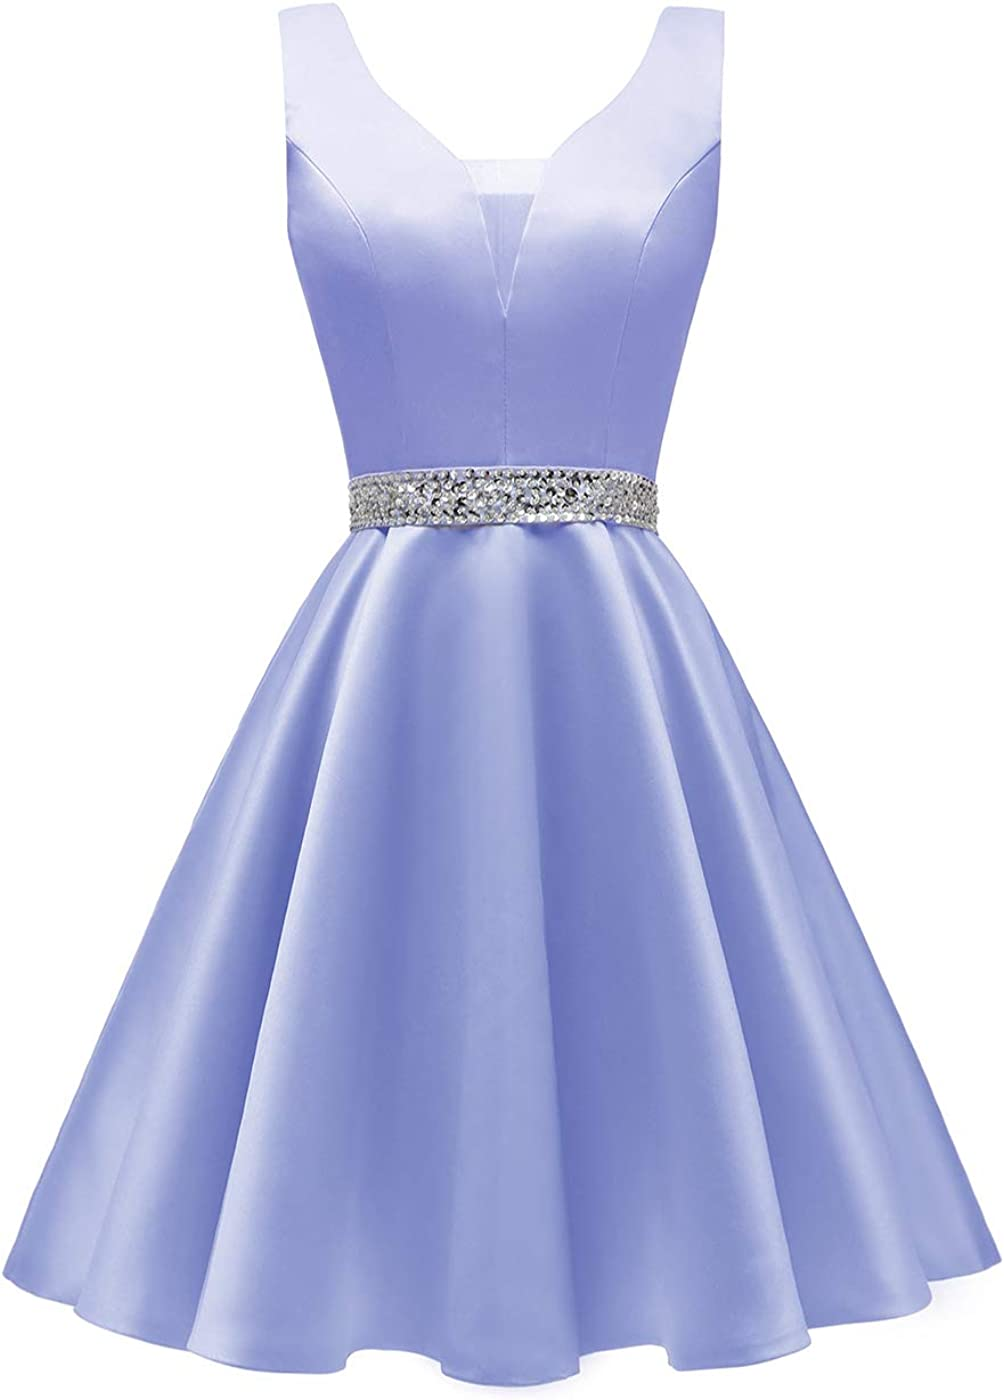 Yexinbridal Homecoming Dresses Short Beaded Prom Dress V-Neck Glitter Party Evening Gowns